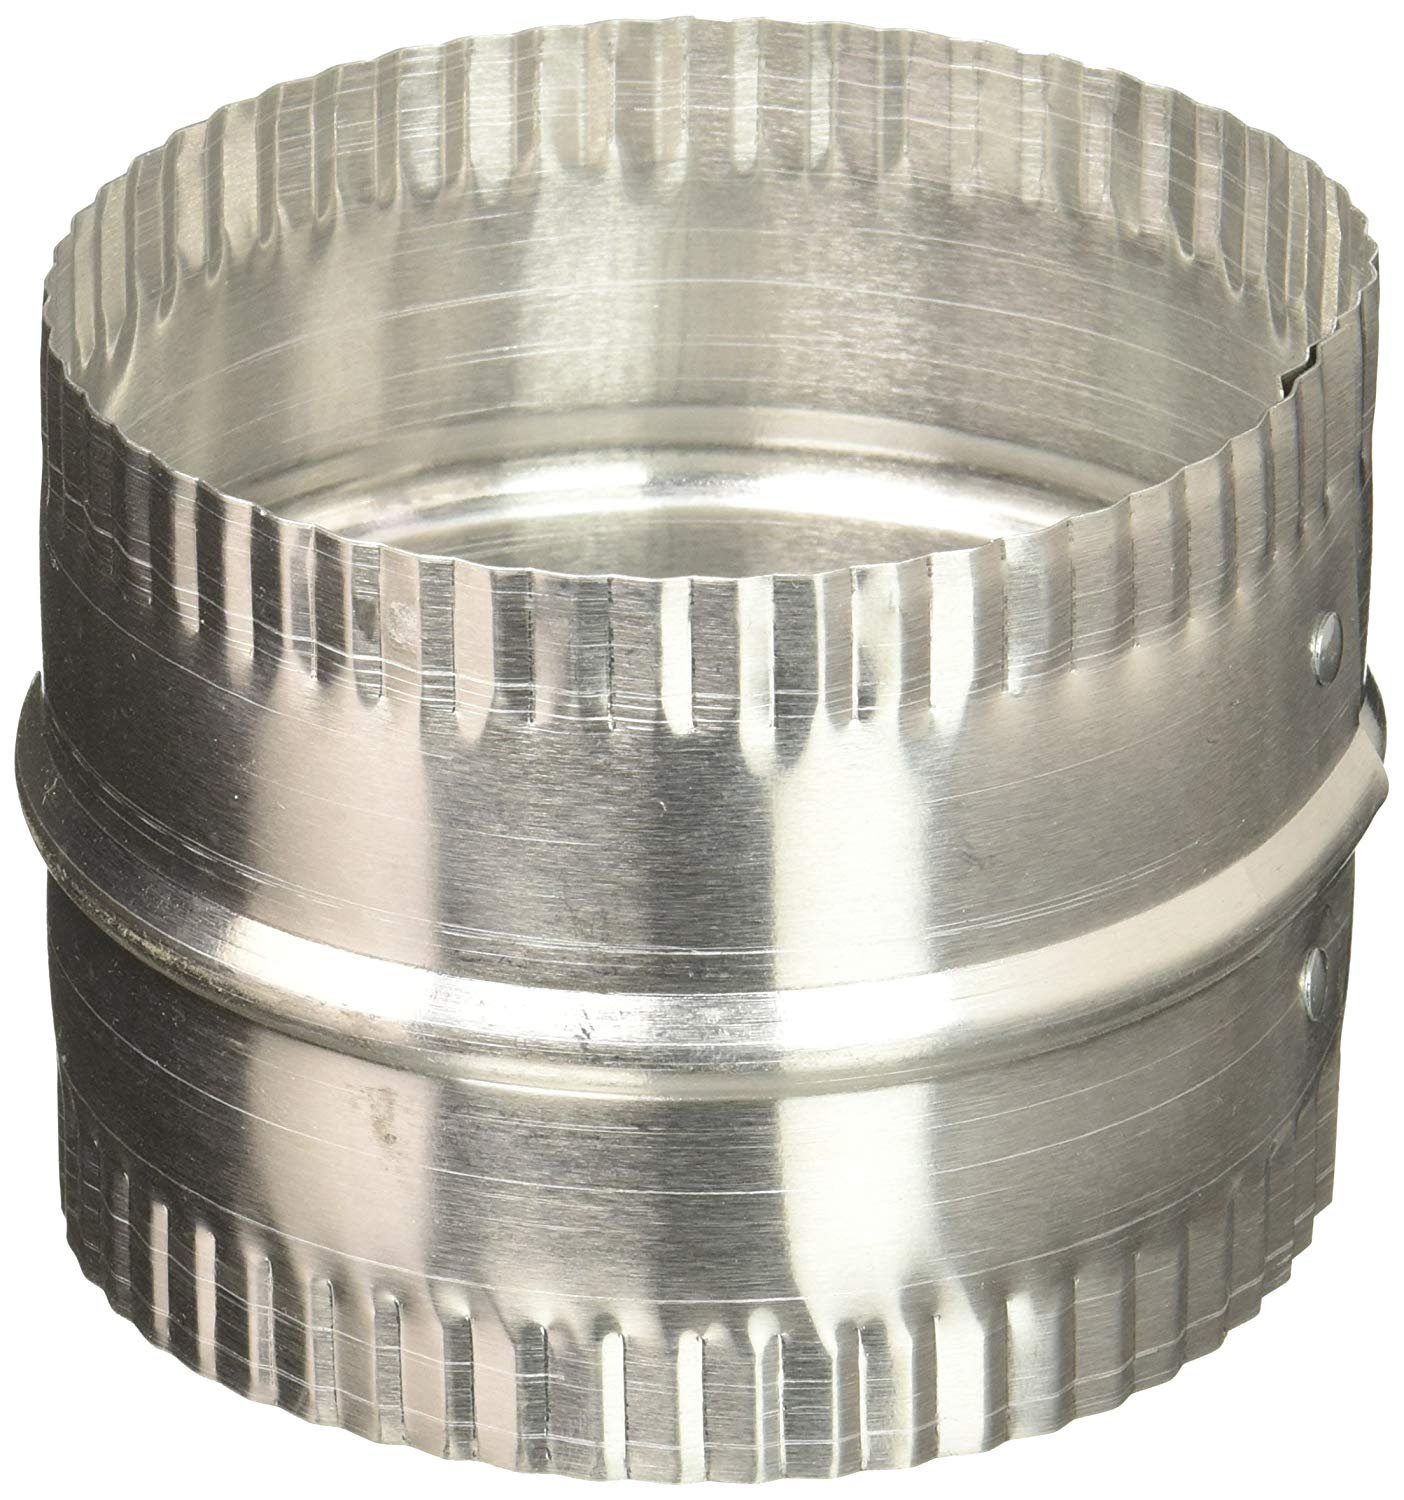 Lambro. 244 4-Inch Aluminum Duct Connector (Limited Edition)